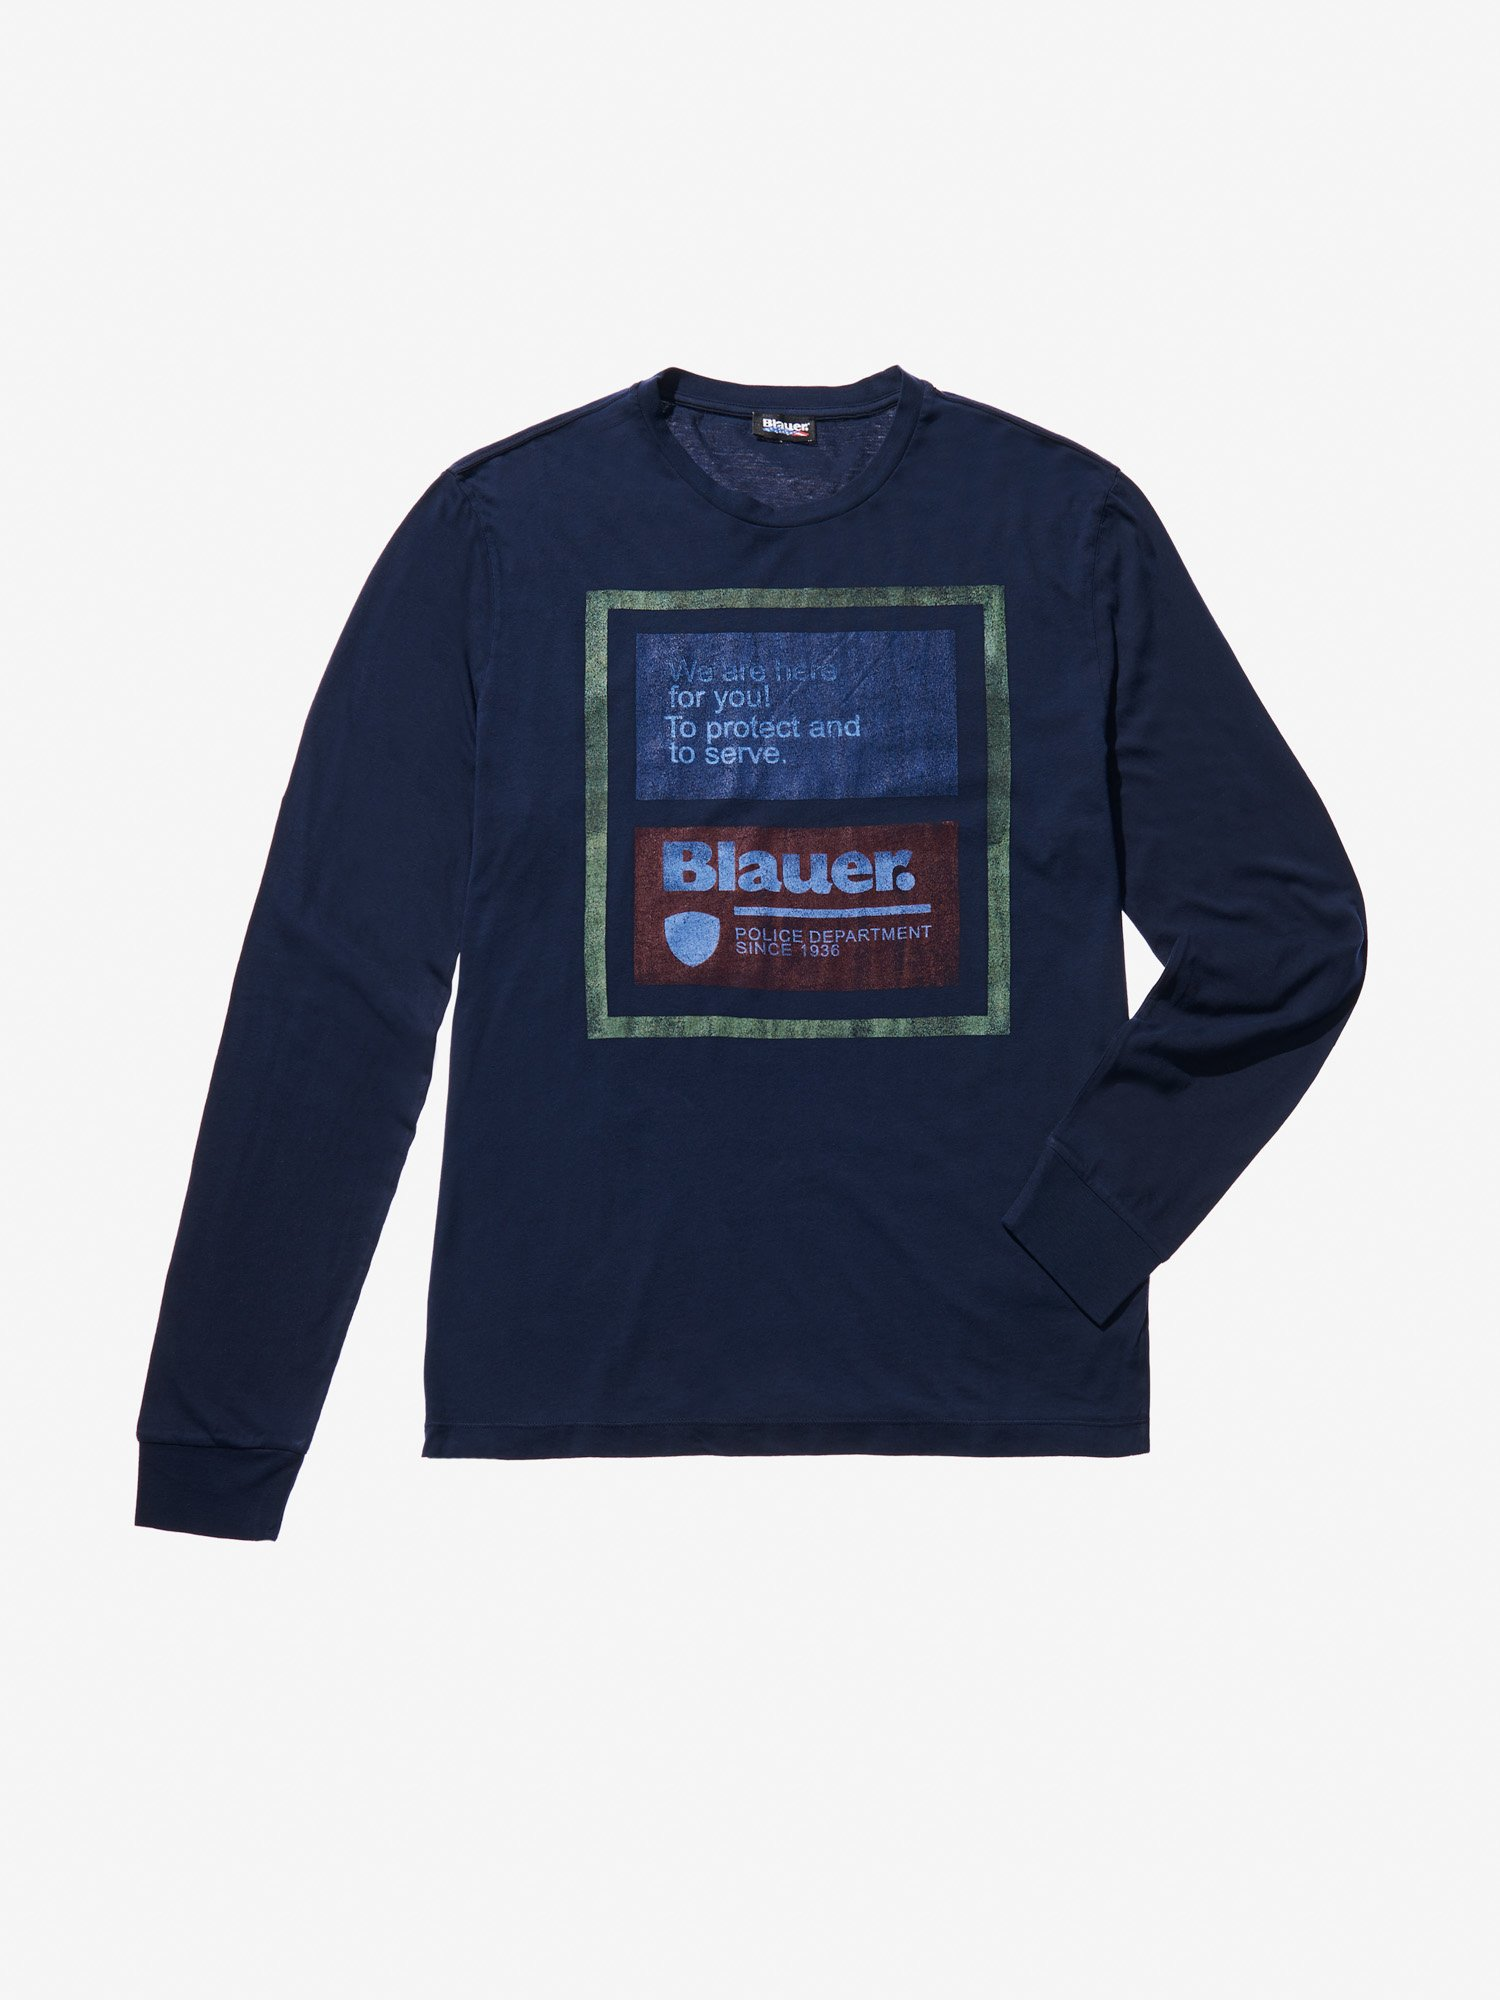 Blauer - PROTECT AND SERVE SWEATER - blue - Blauer